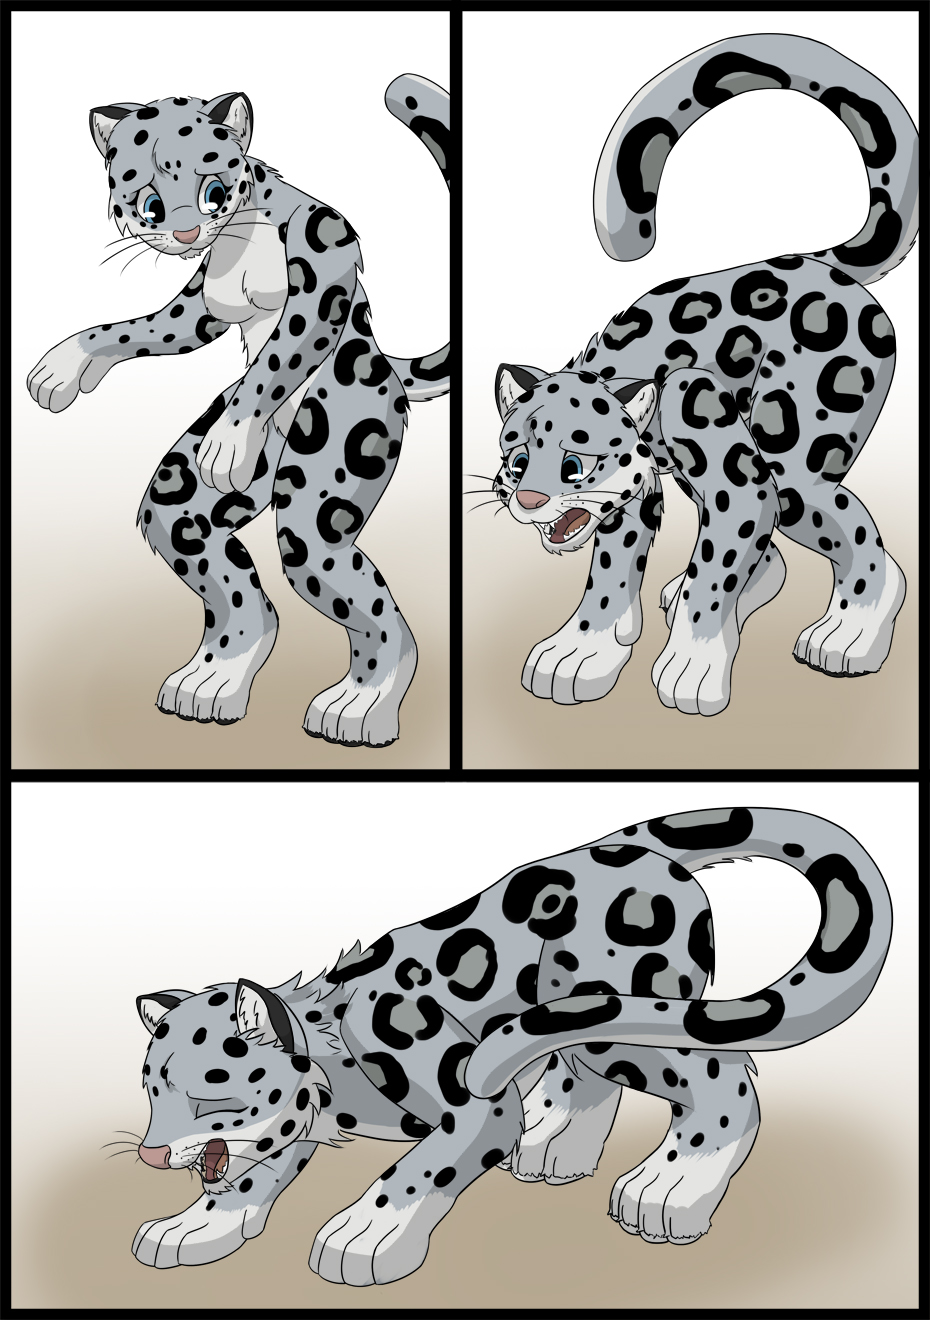 Anthro snow leopard male - photo#21